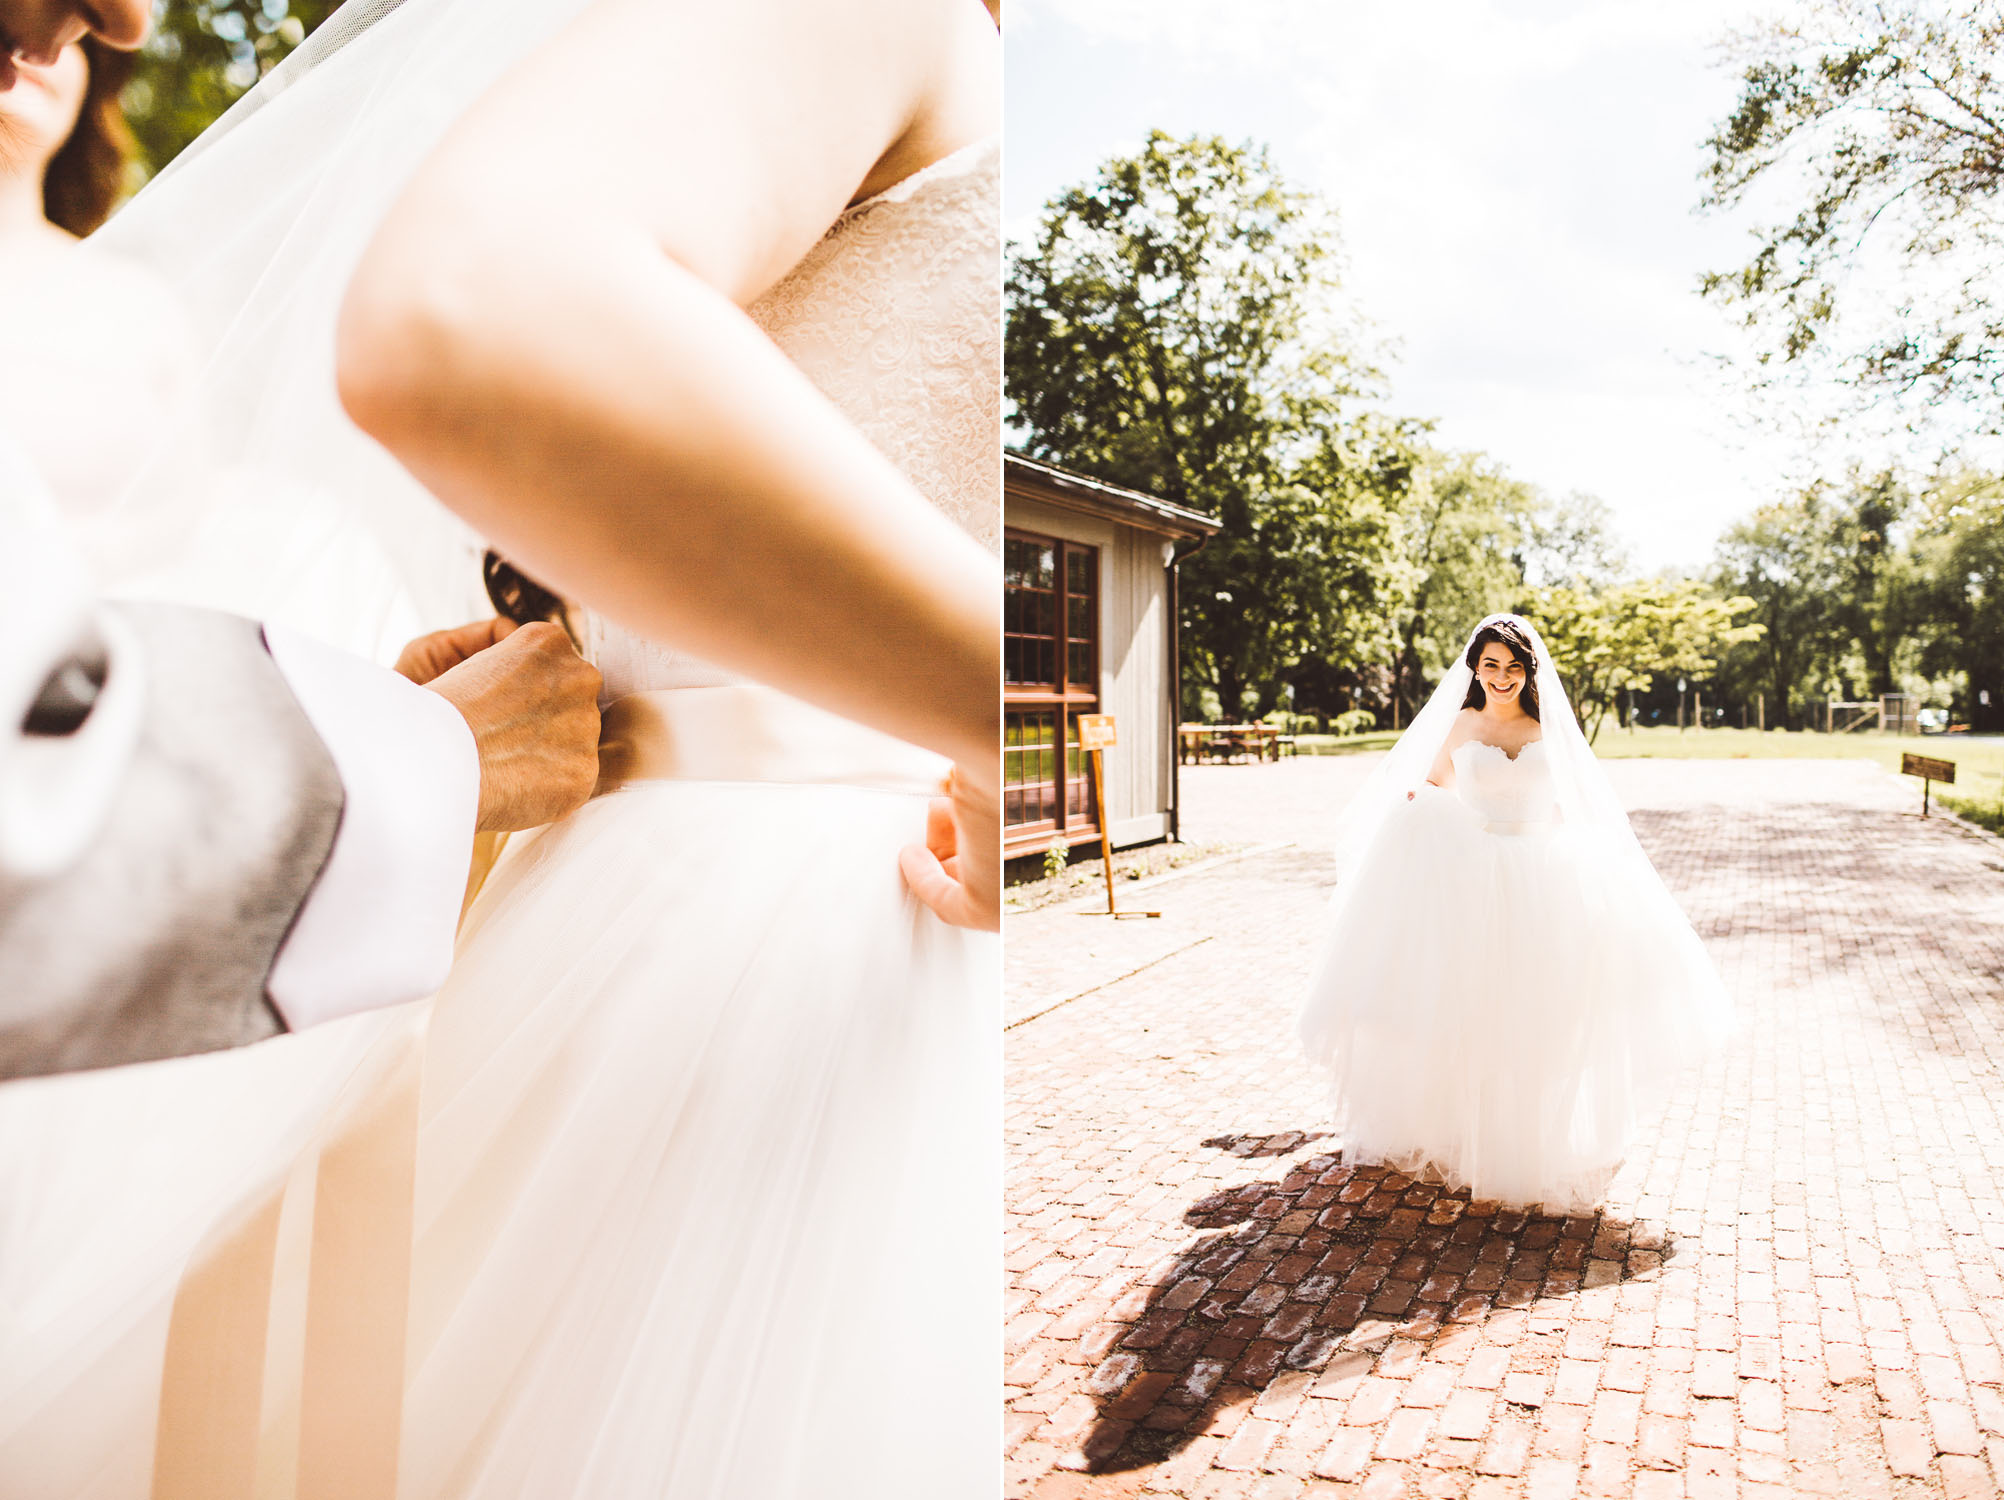 Waterloo-Village-Wedding-Outdoor-Chinese-Gowns-New-Jersey-Photographer-65 copy.jpg